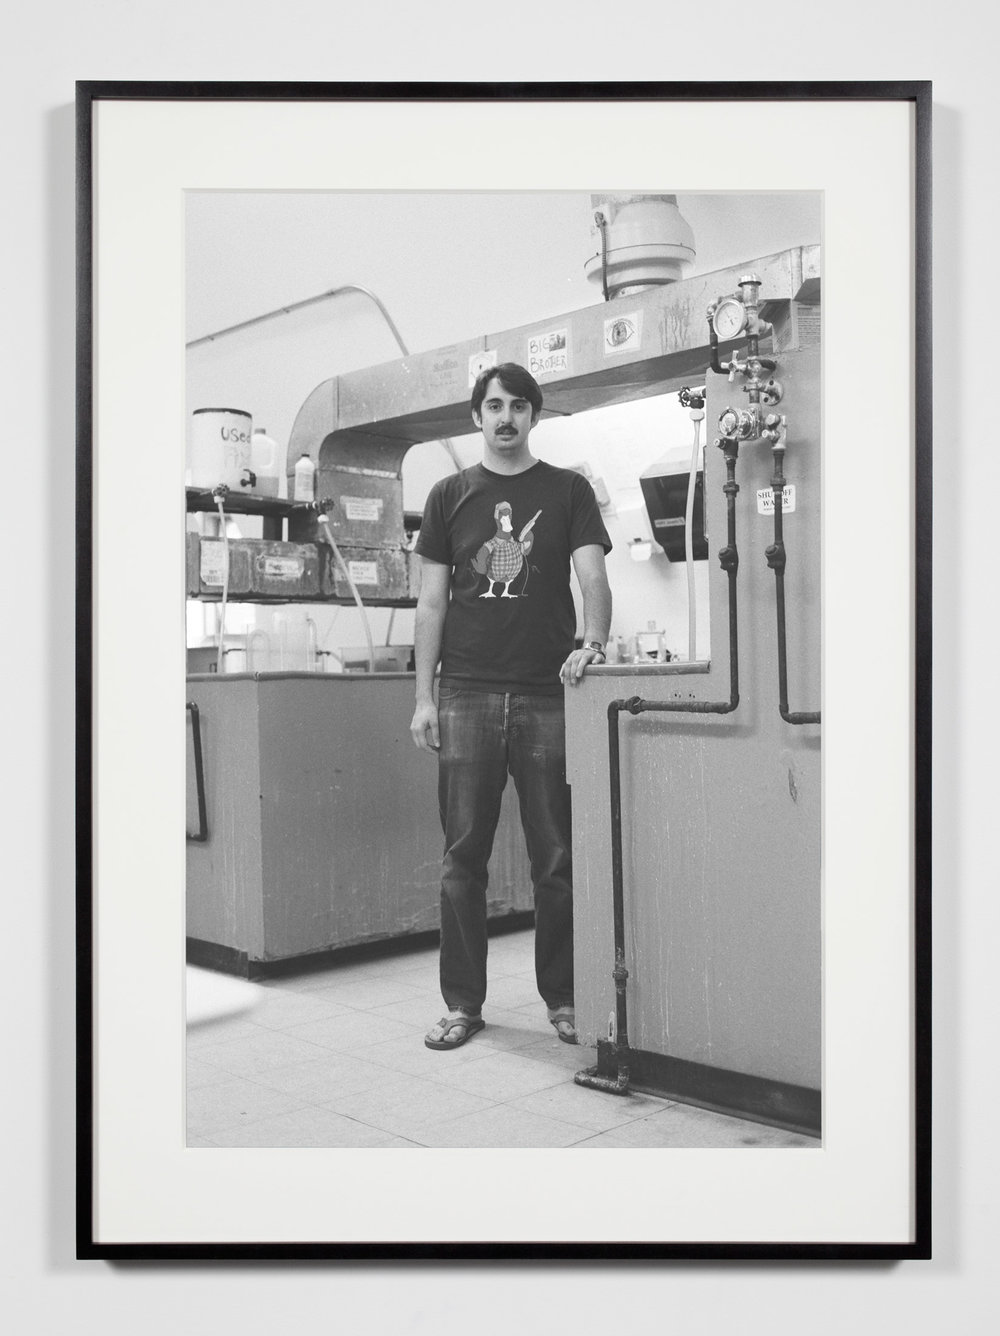 College Darkroom Technician, Annandale-on-Hudson, New York, July 11, 2009    2011   Epson Ultrachrome K3 archival ink jet print on Hahnemühle Photo Rag paper  36 3/8 x 26 3/8 inches   A Diagram of Forces, 2011